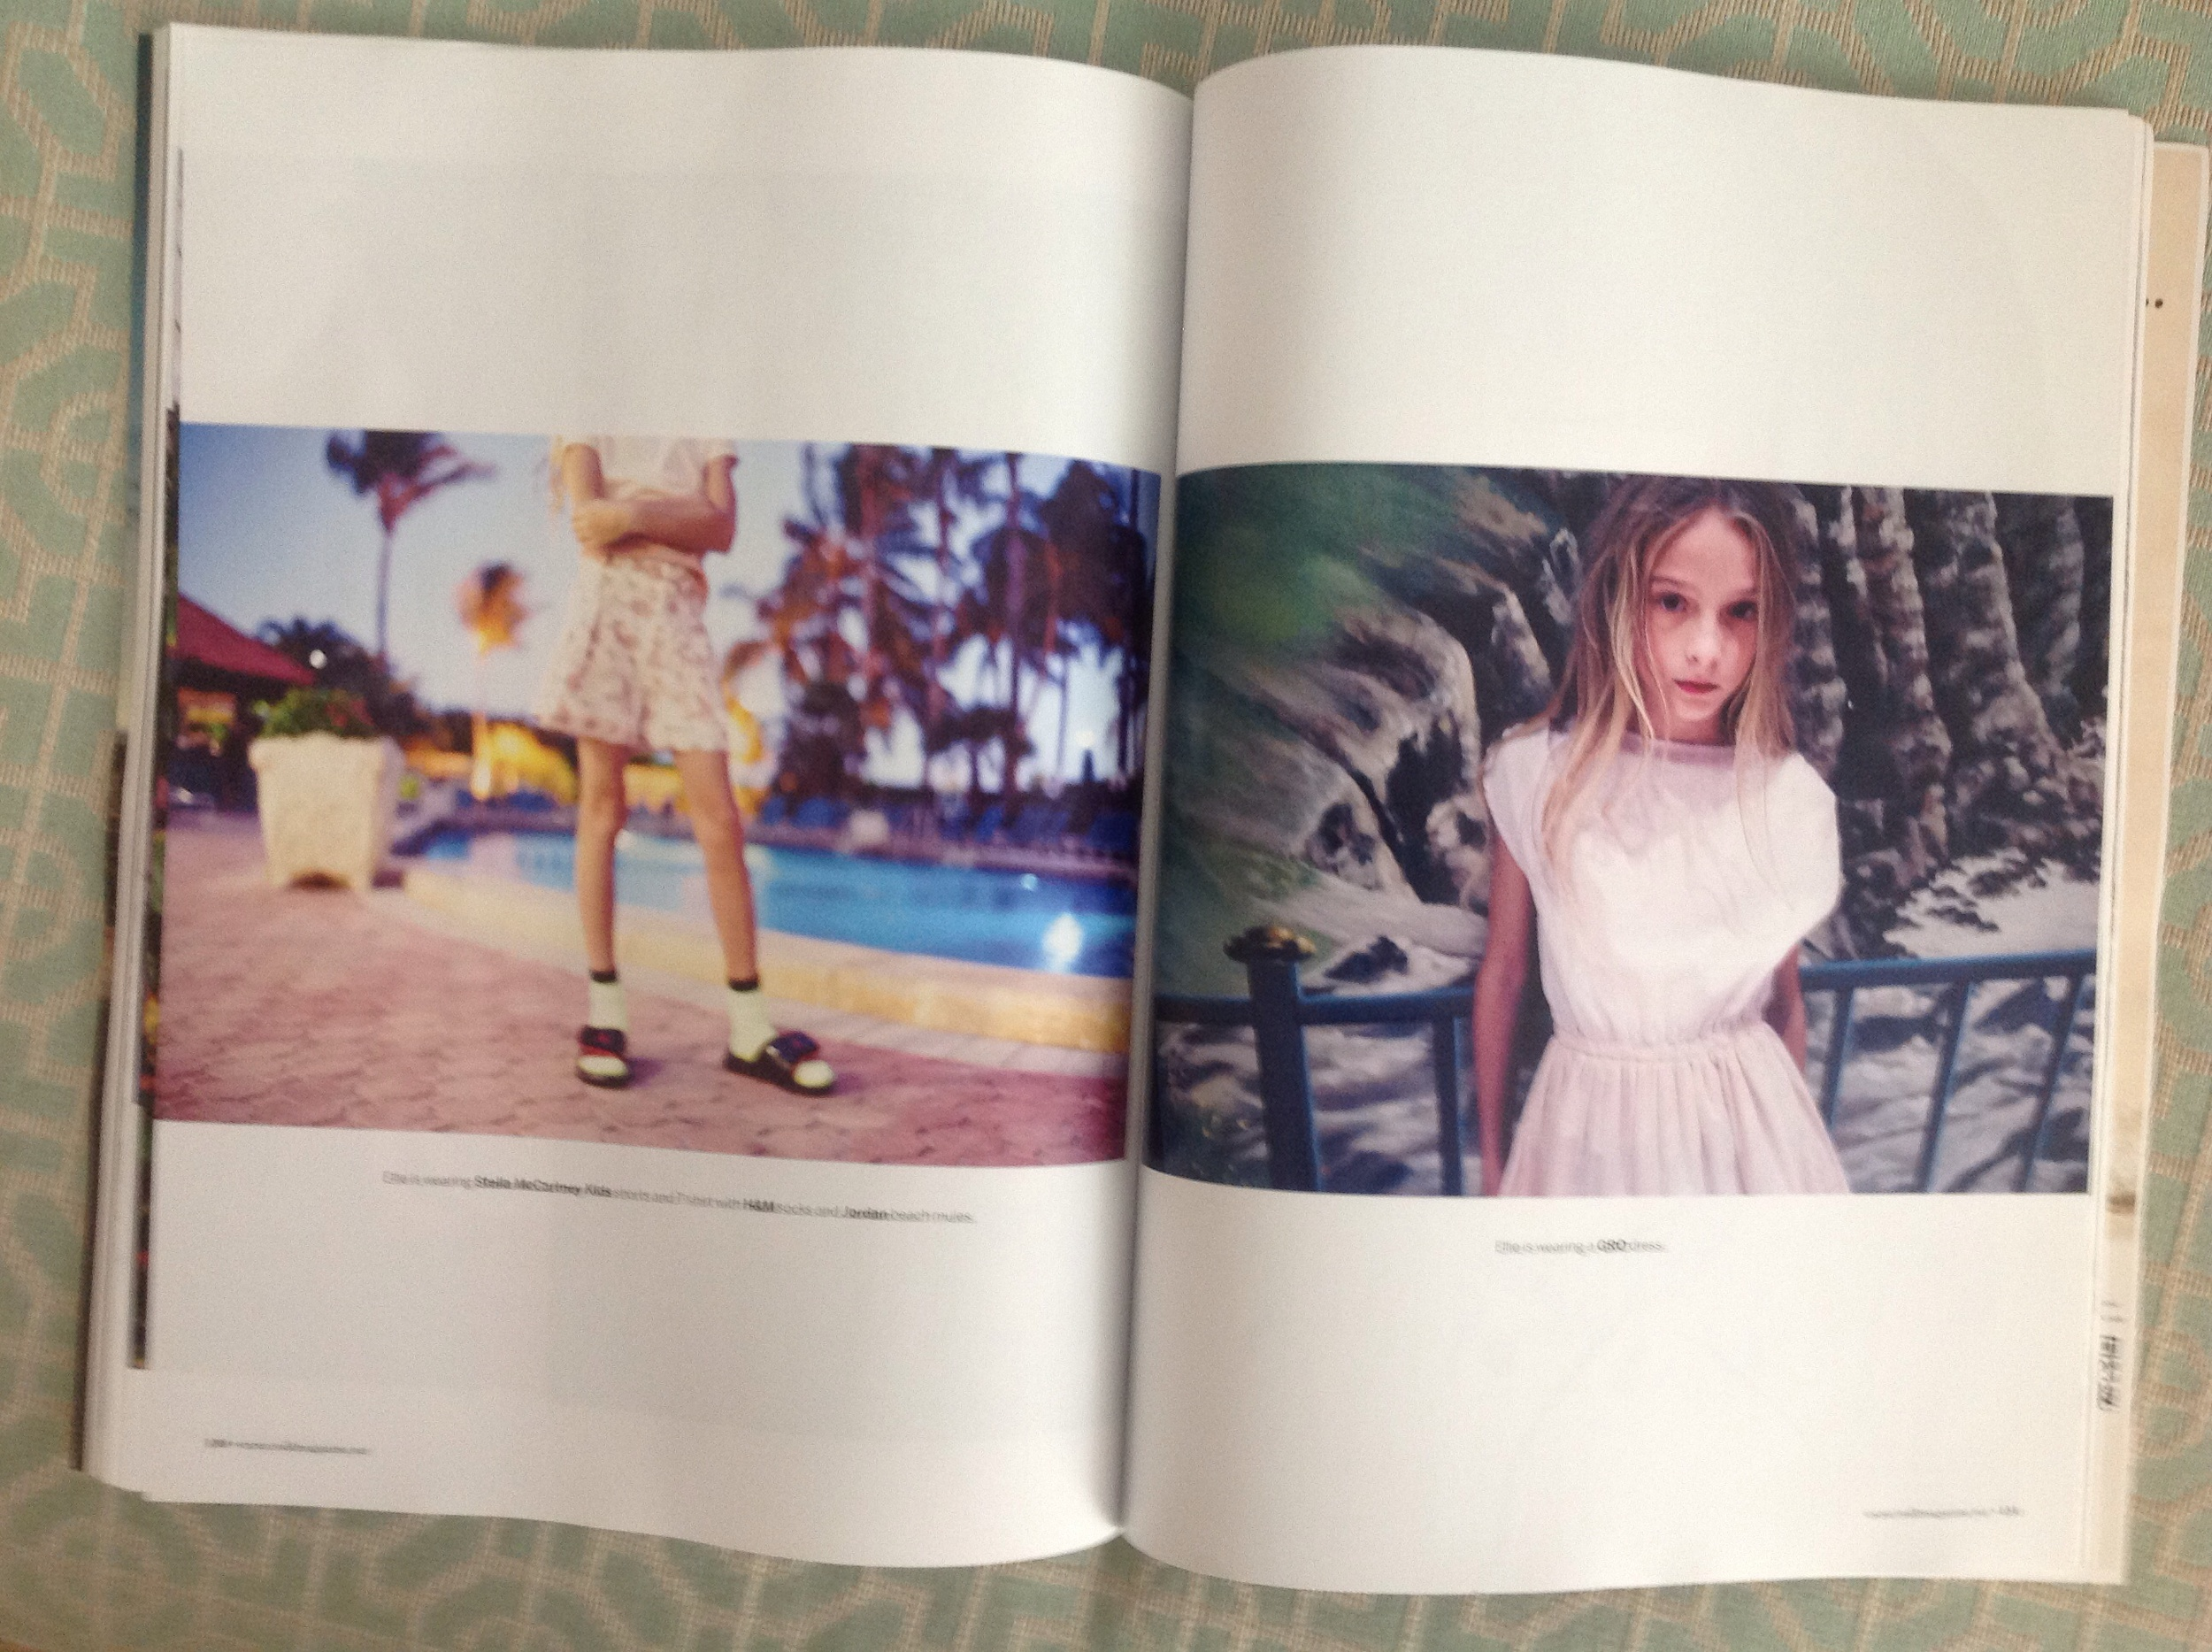 Story for Milk Magazine Styled by Ellie Lines